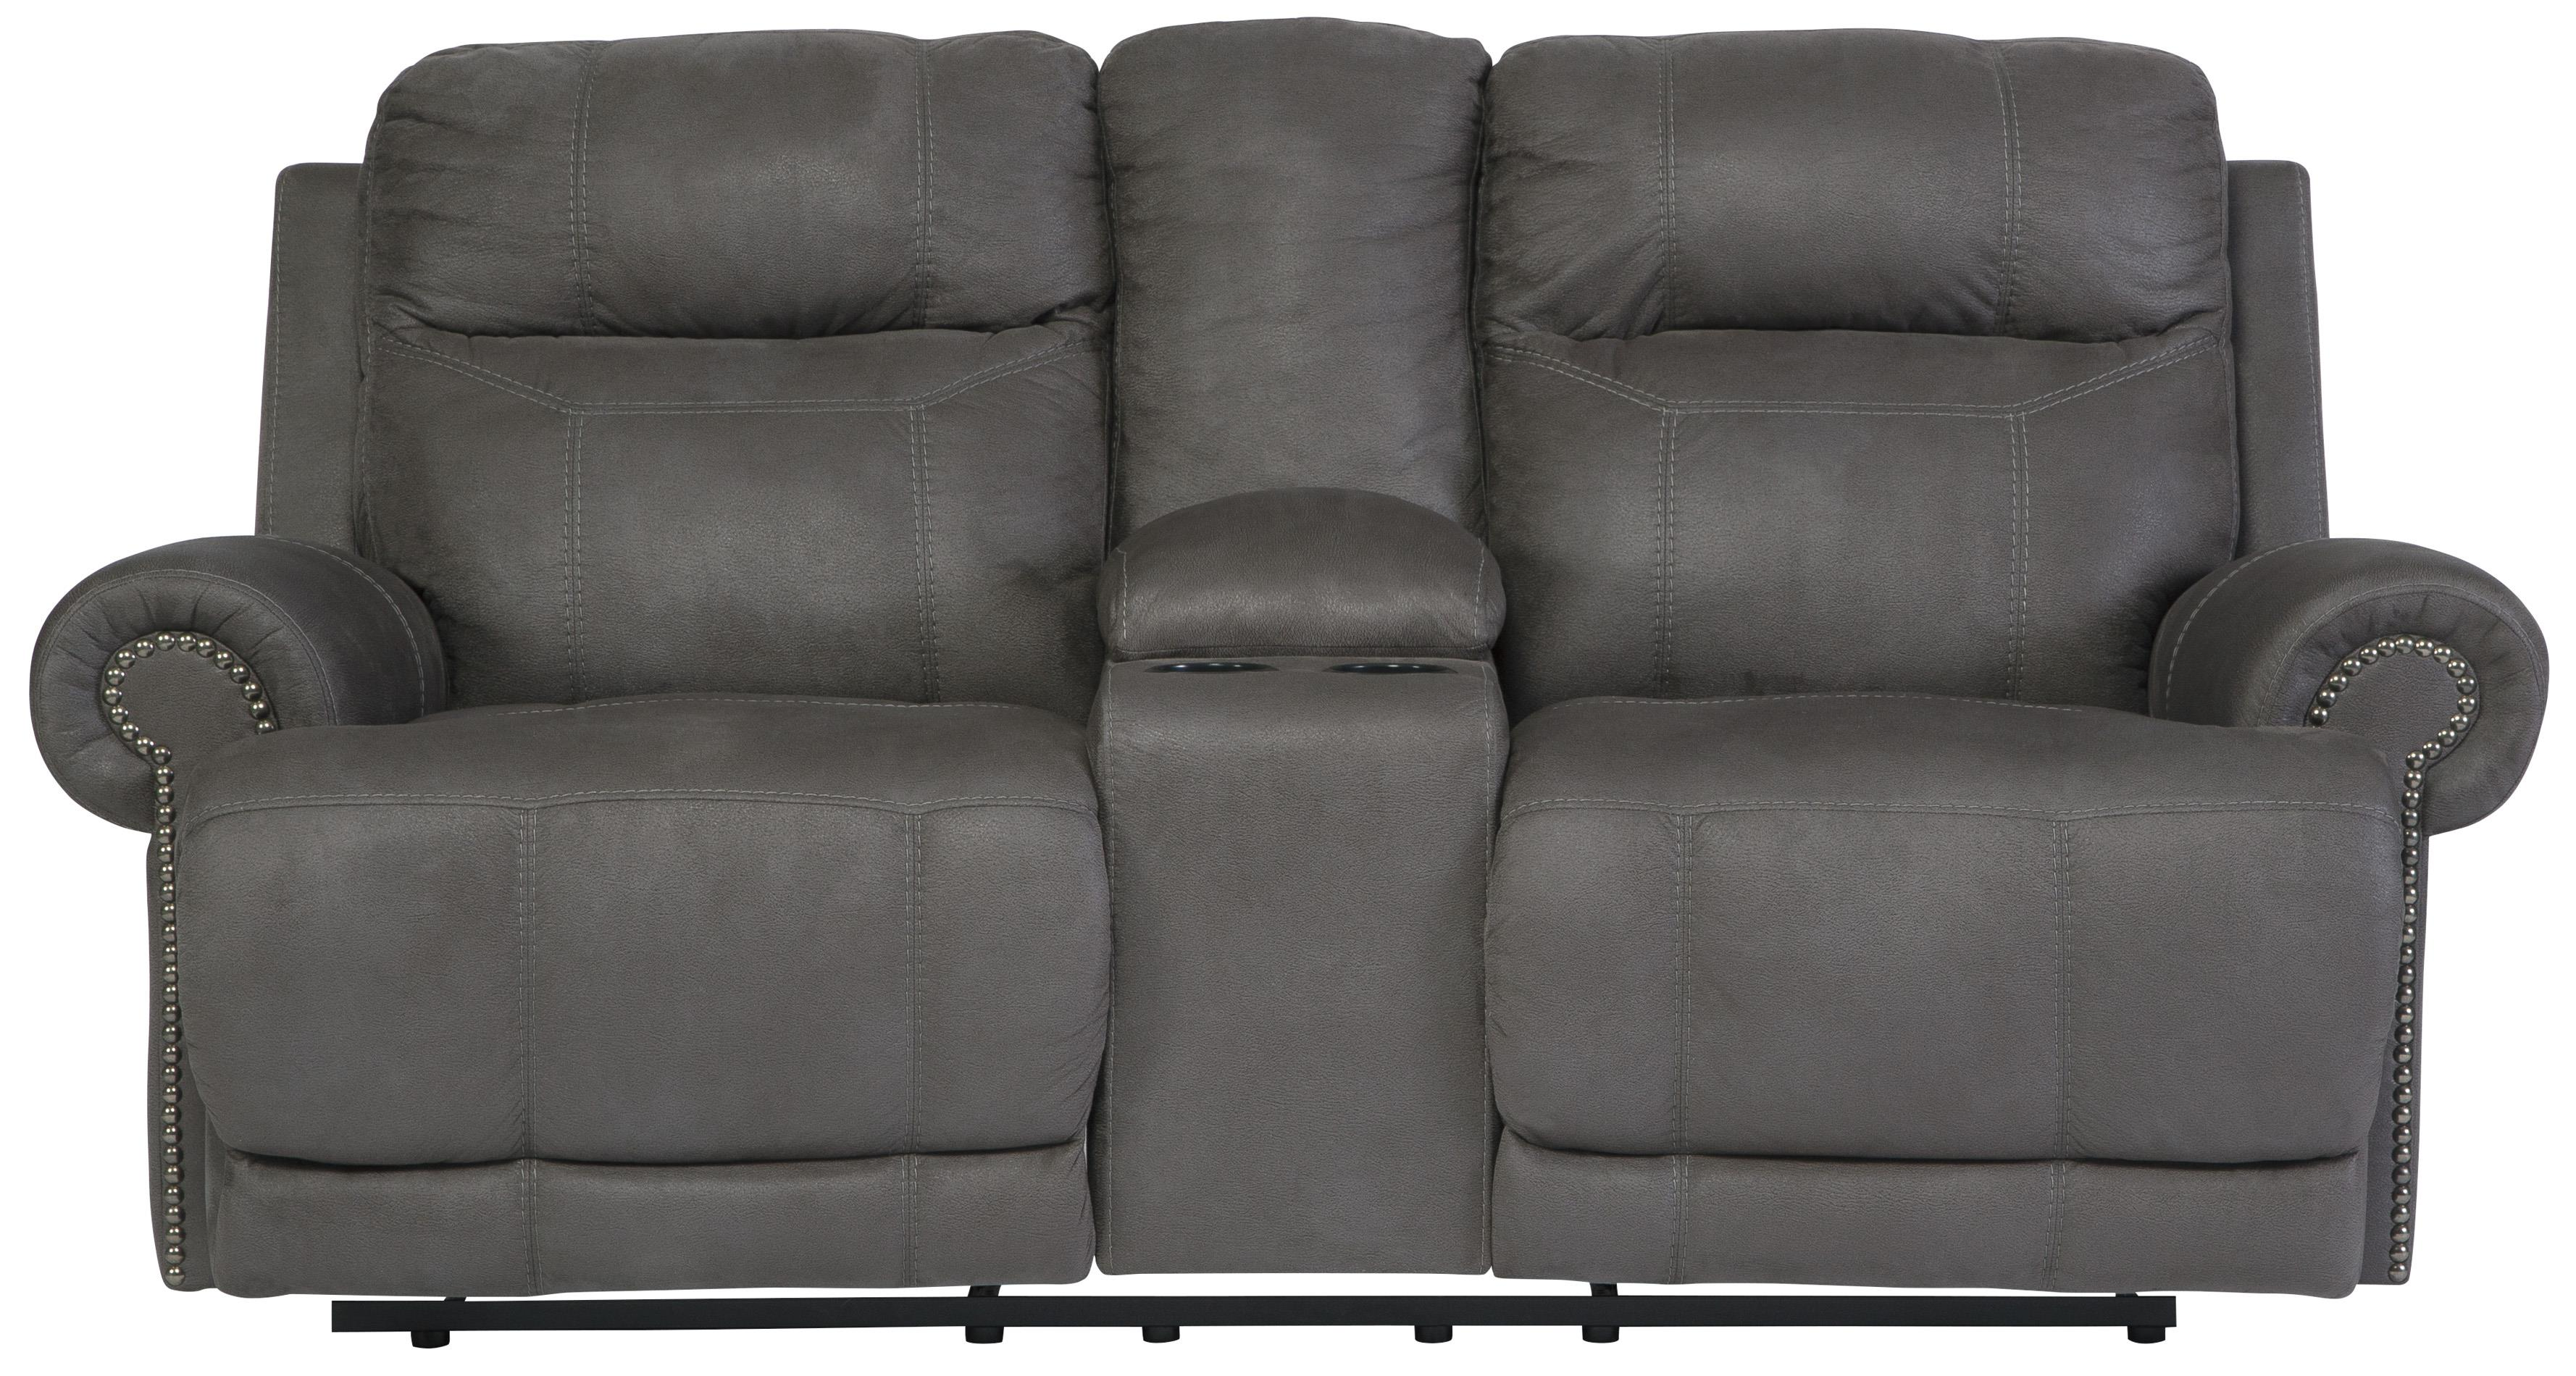 Austere - Gray Double Reclining Loveseat w/ Console by Signature Design by Ashley at Sparks HomeStore